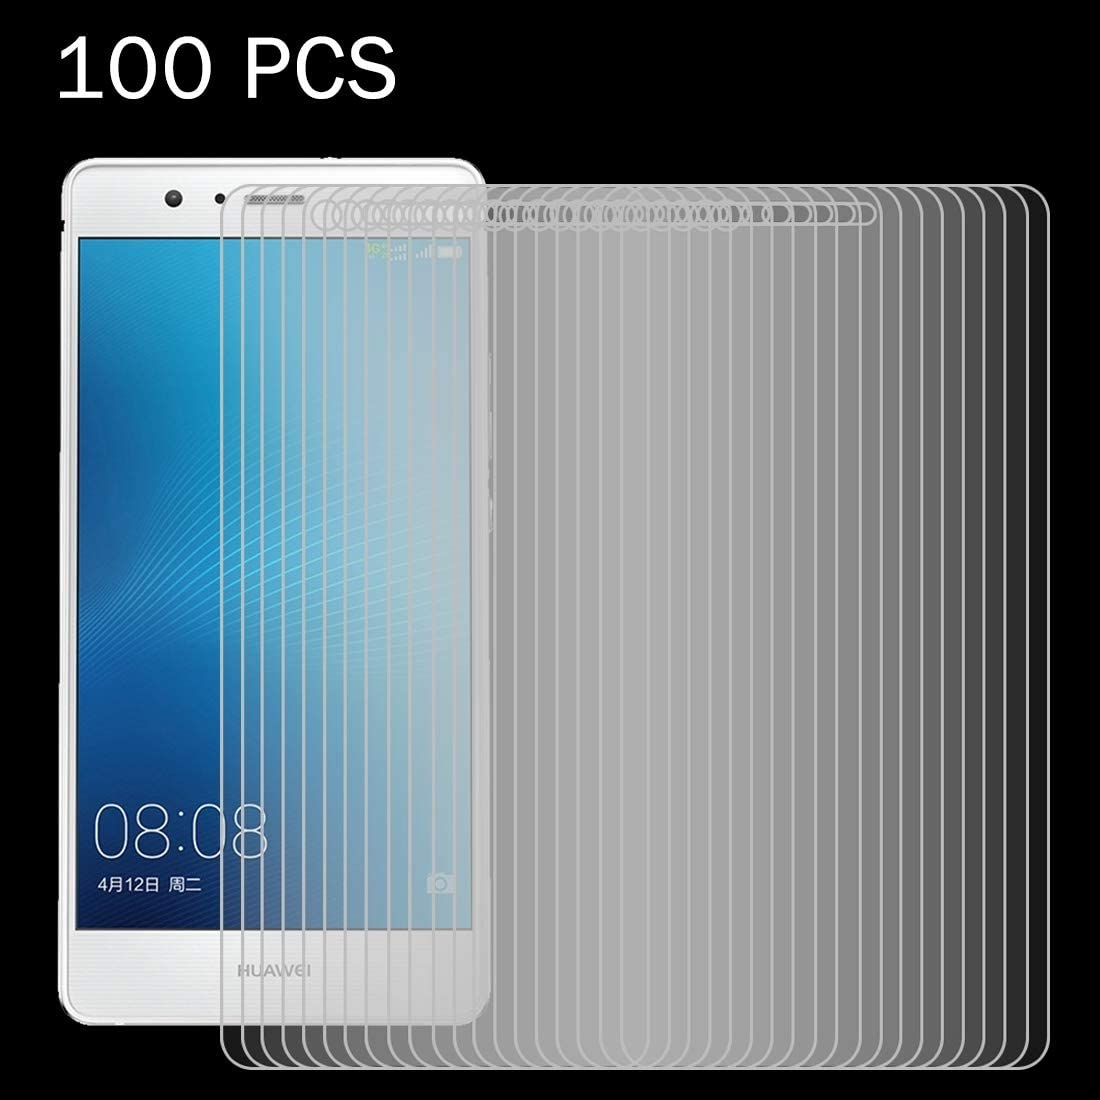 LIUDSASSBFQINGR Screen Protectors 100 PCS for Huawei P9 Lite 0.26mm 9H Surface Hardness 2.5D Explosion-Proof Tempered Glass Screen Film Cell Phones Accessories